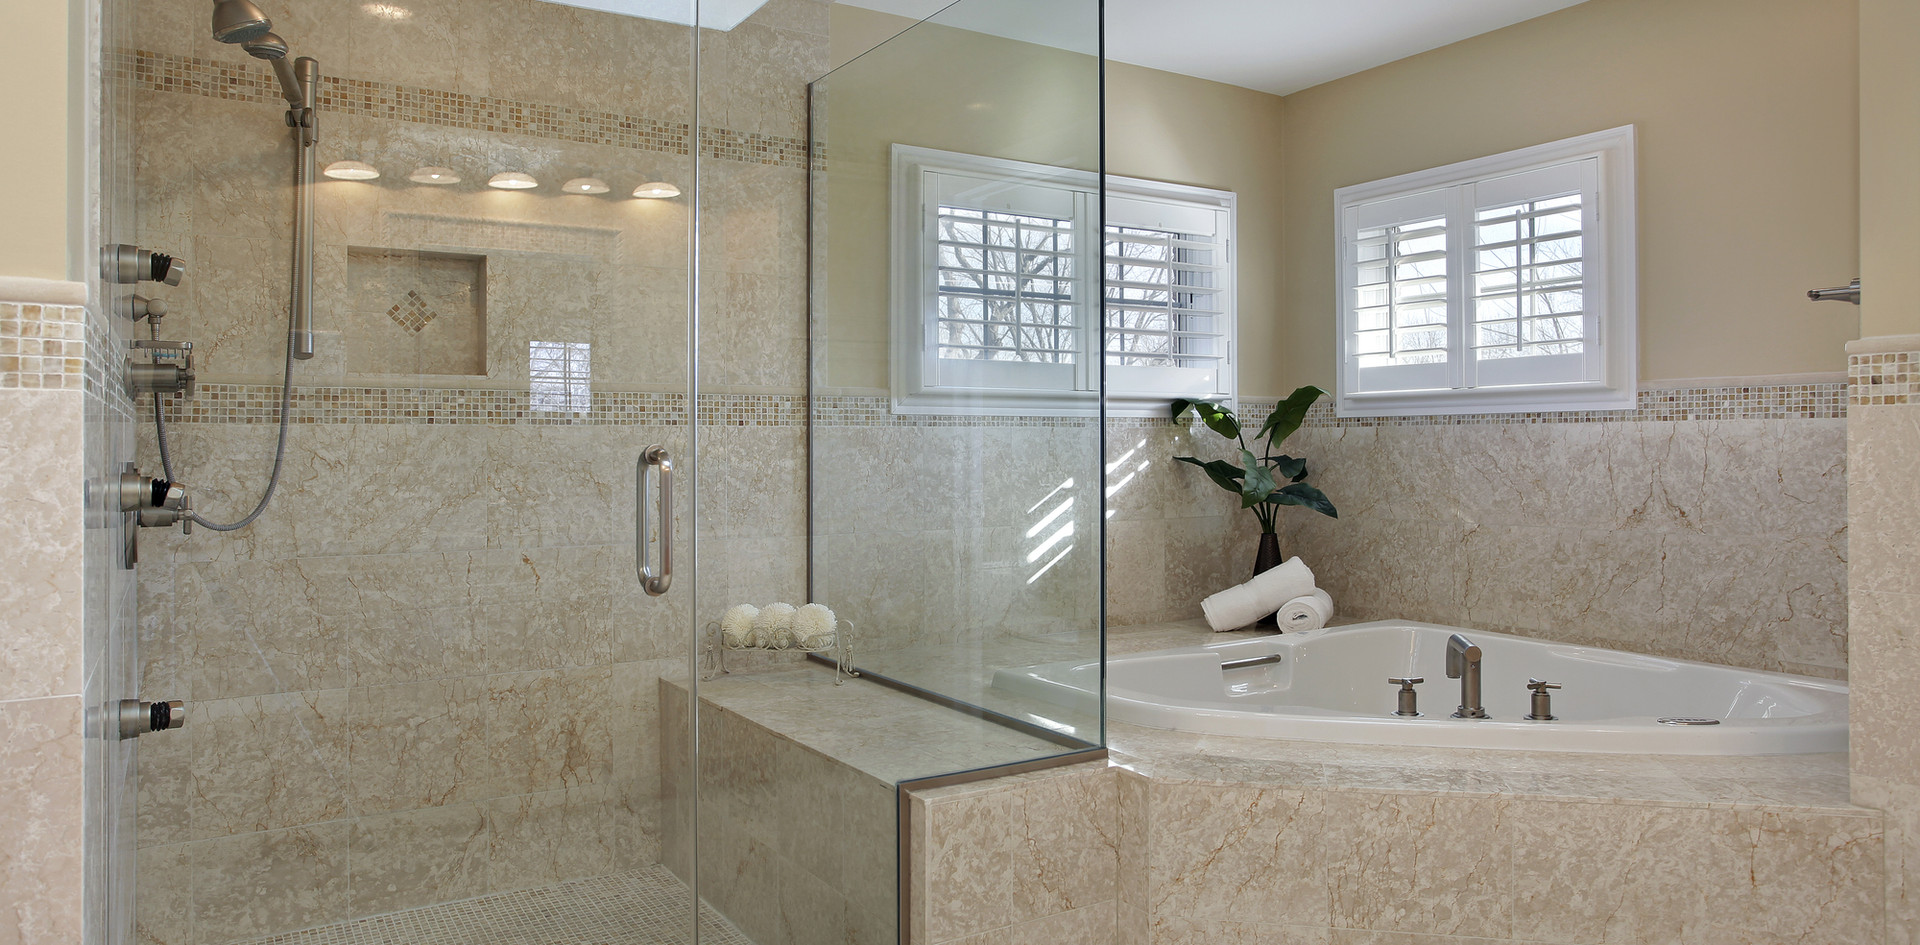 quartzite bathroom vanity, Wanaque, NJ, Njcountertops.com